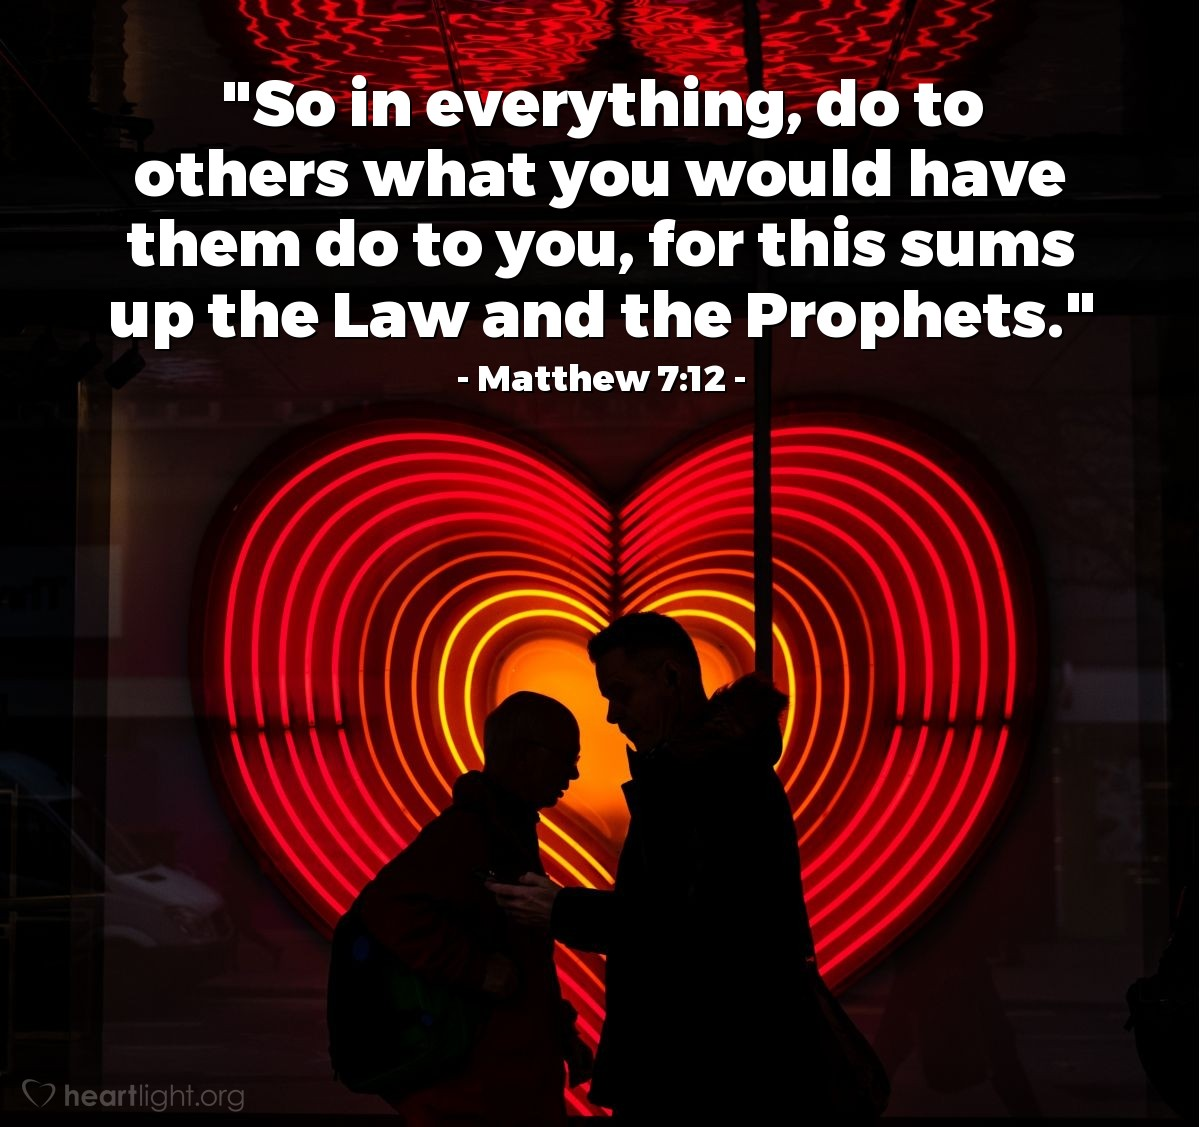 Inspirational illustration of Matthew 7:12